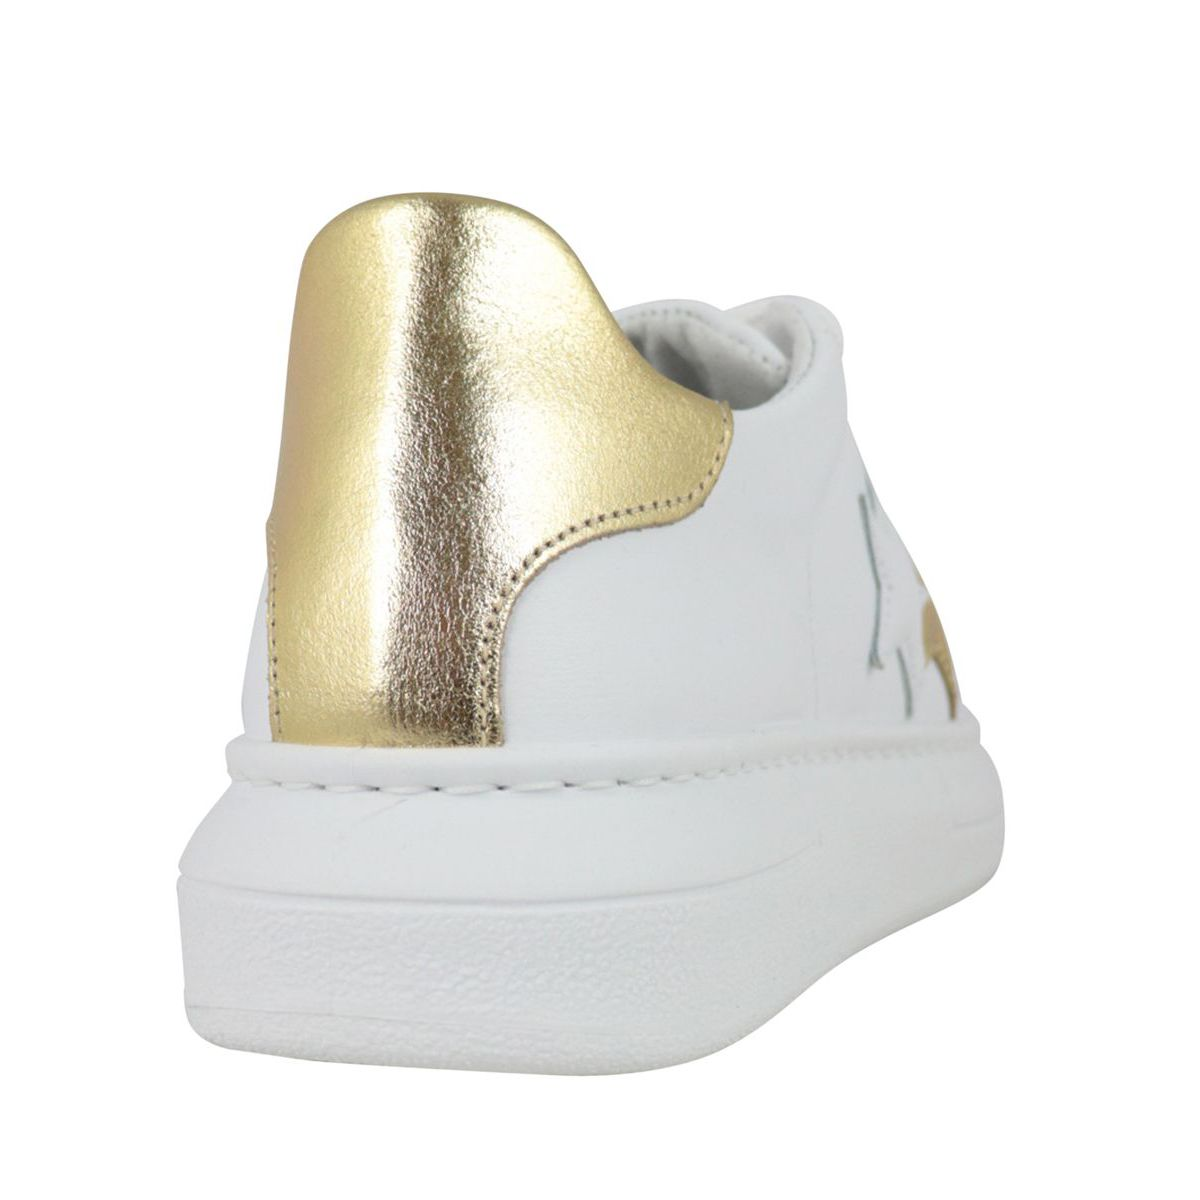 Sneakers with side logo and gold detail on the back White / gold 2Star